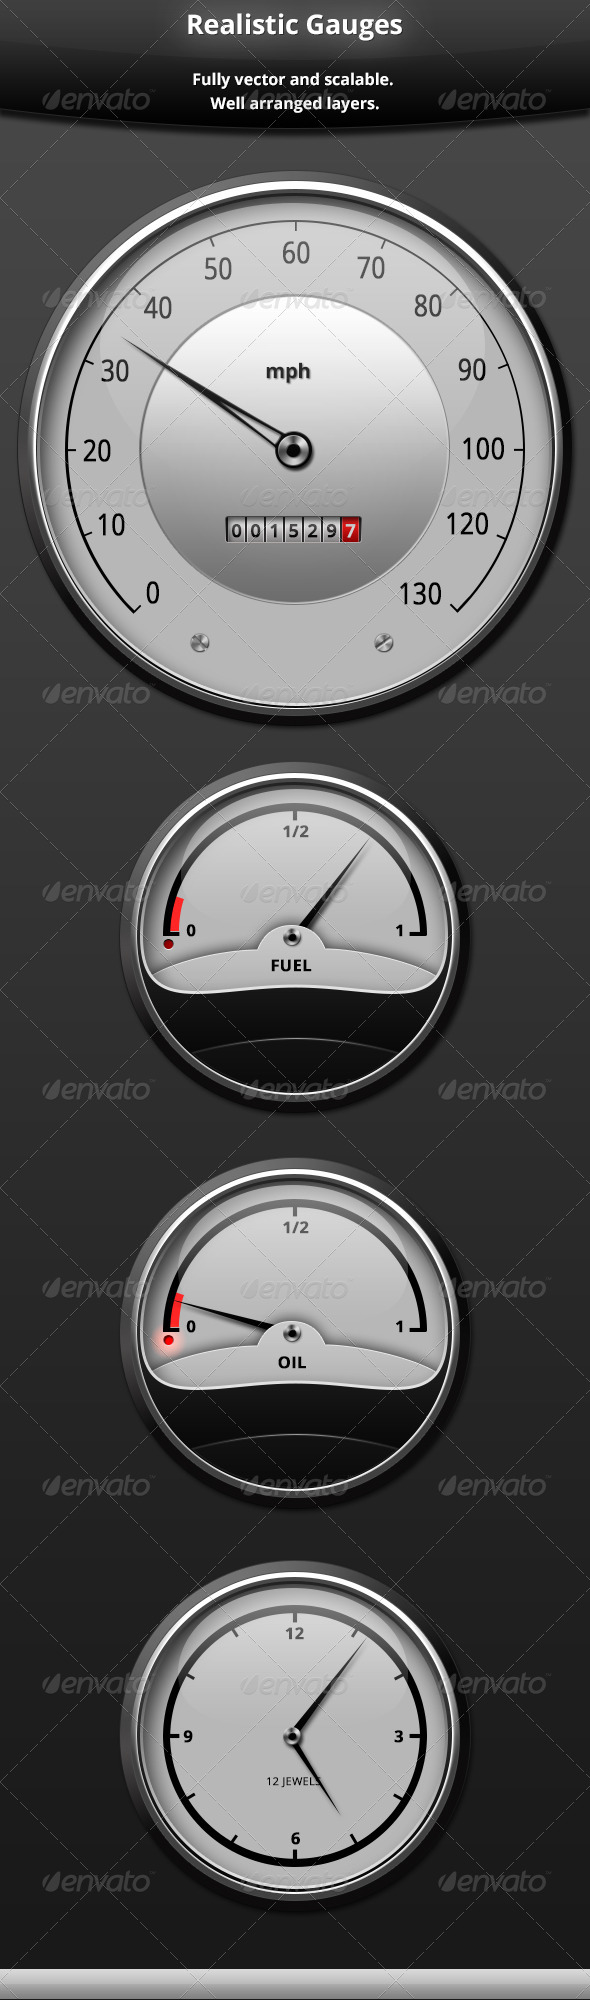 GraphicRiver Realistic Gauges 5923549